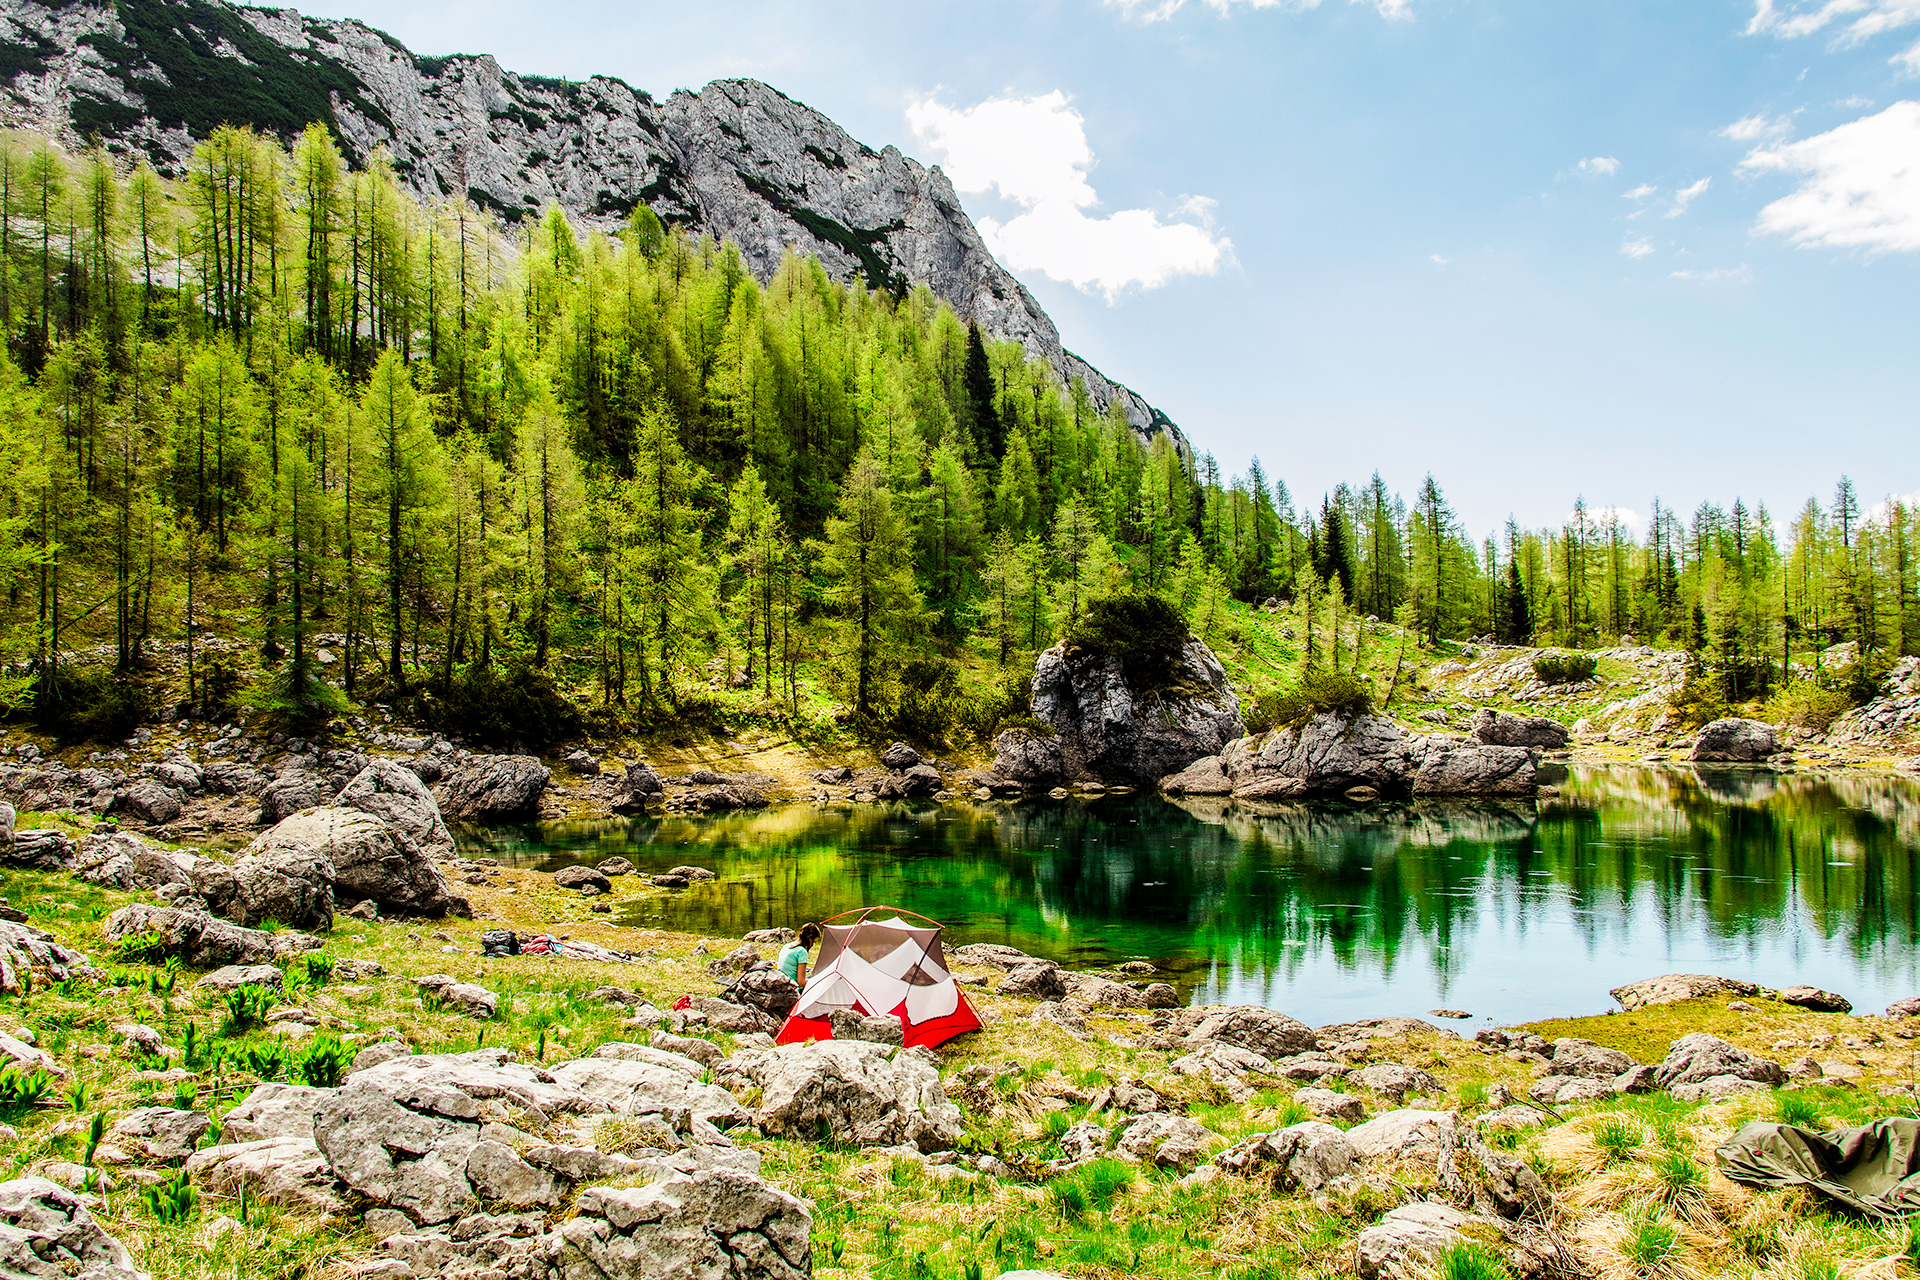 Camping at Dvojno Jezero in the Julian Alps